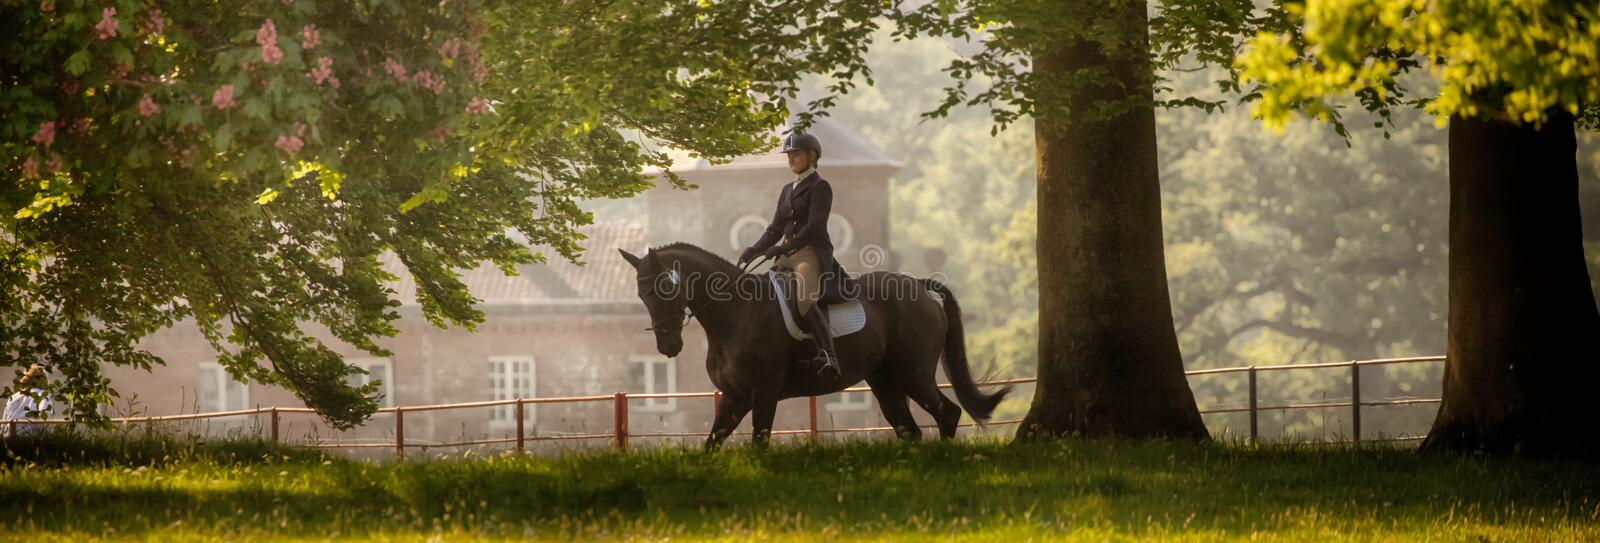 Houghton international horse trials May 2017. HOUGHTON, NORFOLK/ENGLAND - May 25th 2017: Houghton International Horse Trials 2017 with Chloe Lynn on Calzini royalty free stock photography